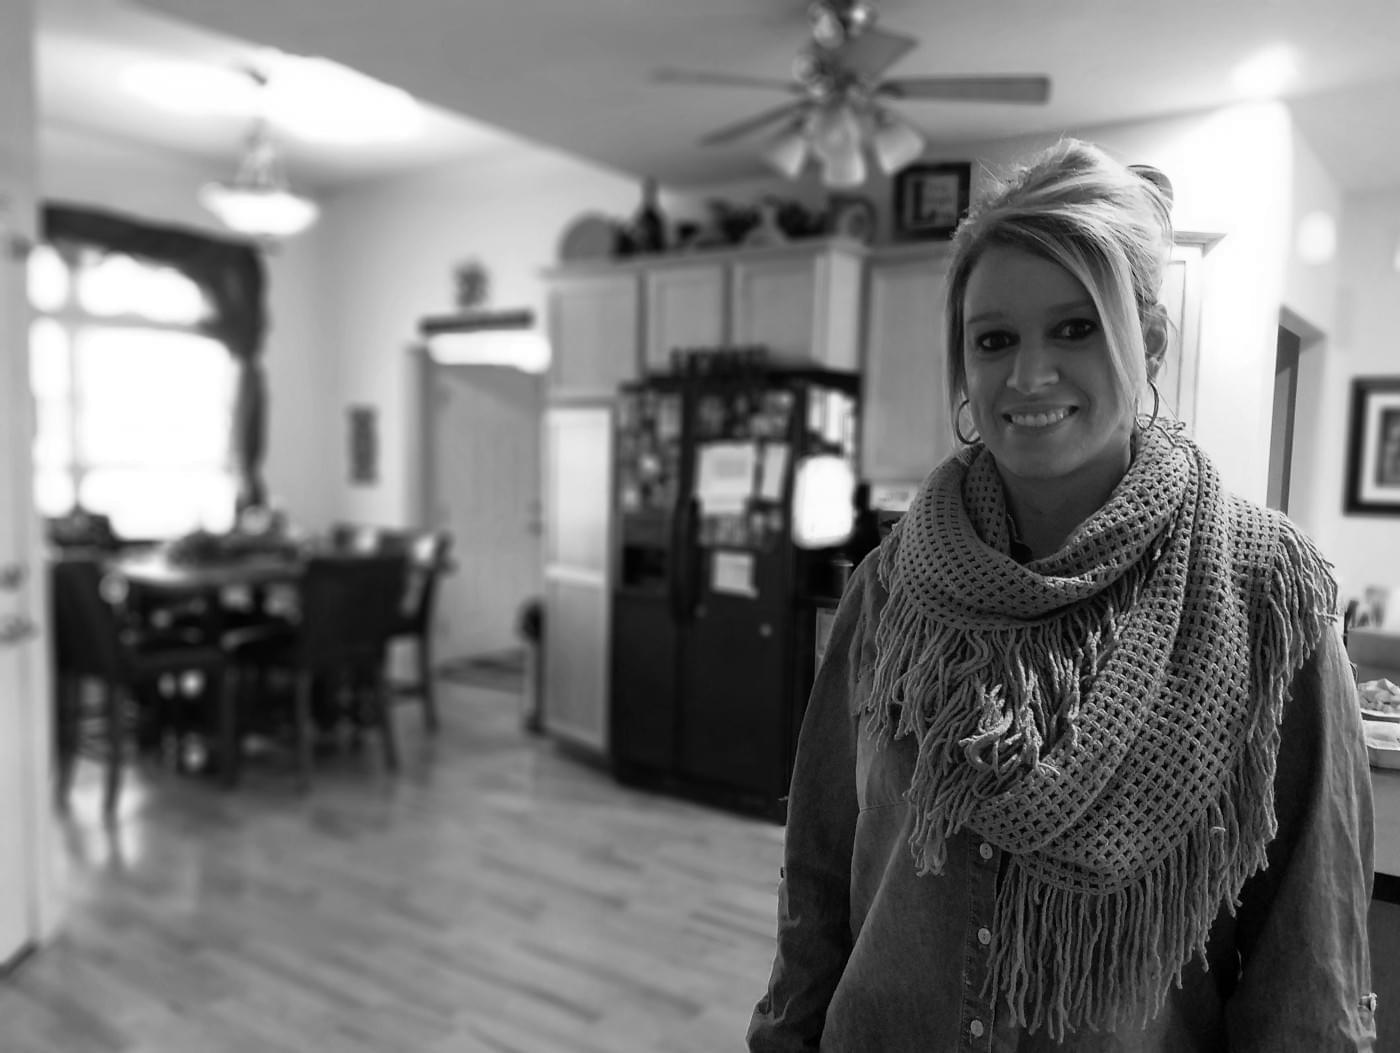 Jaime Smith at her home in St. Joseph.